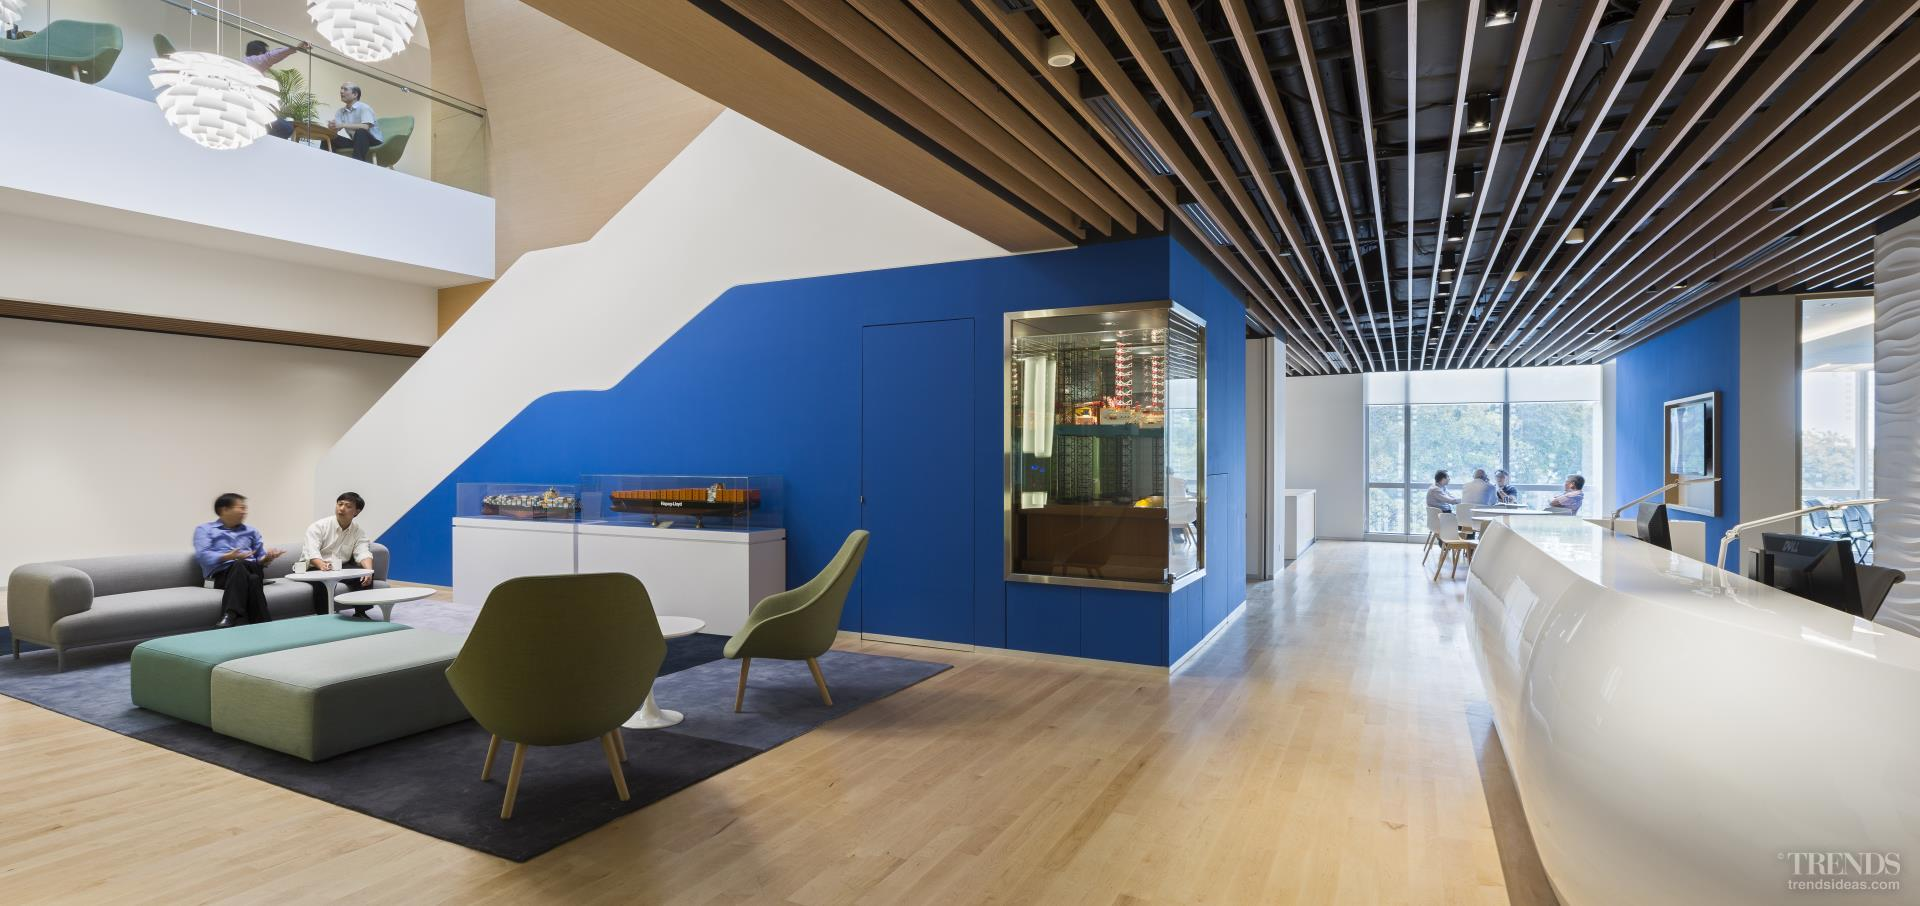 Office fit out for dnv gl technology centre singapore by for Office design trends articles